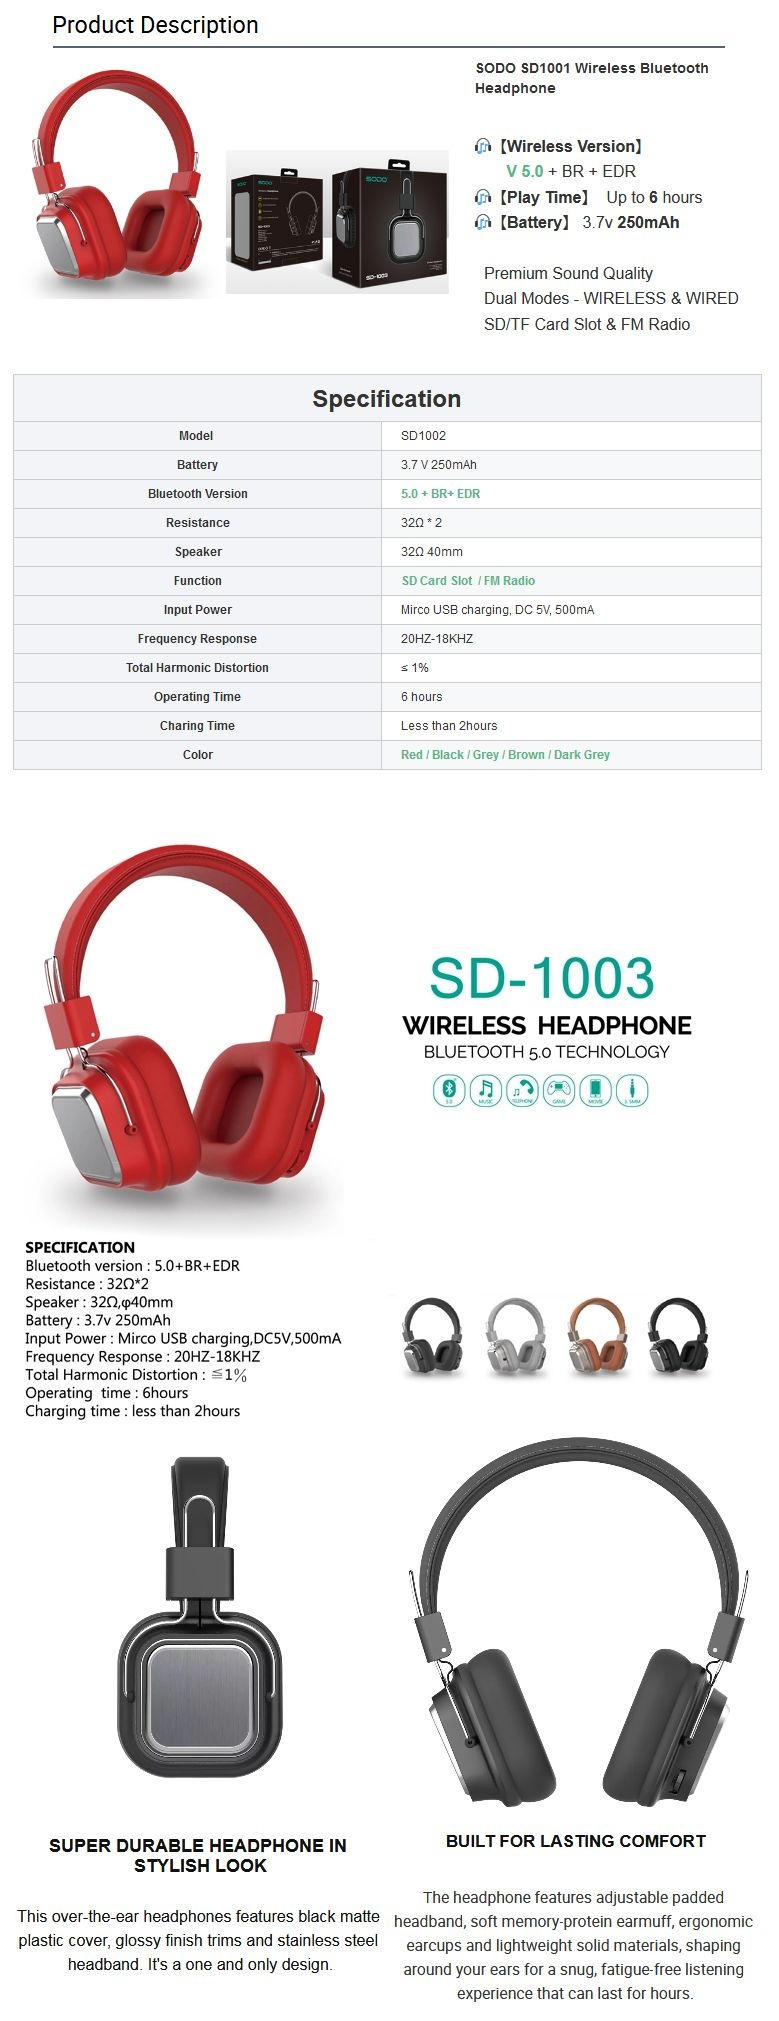 Screenshot_2019-06-29 Sodo Sd1003 Oem Stereo Lightweight Foldable Dual Modes Wired Wireless Over Ear Bluetooth Headphone - [...].png